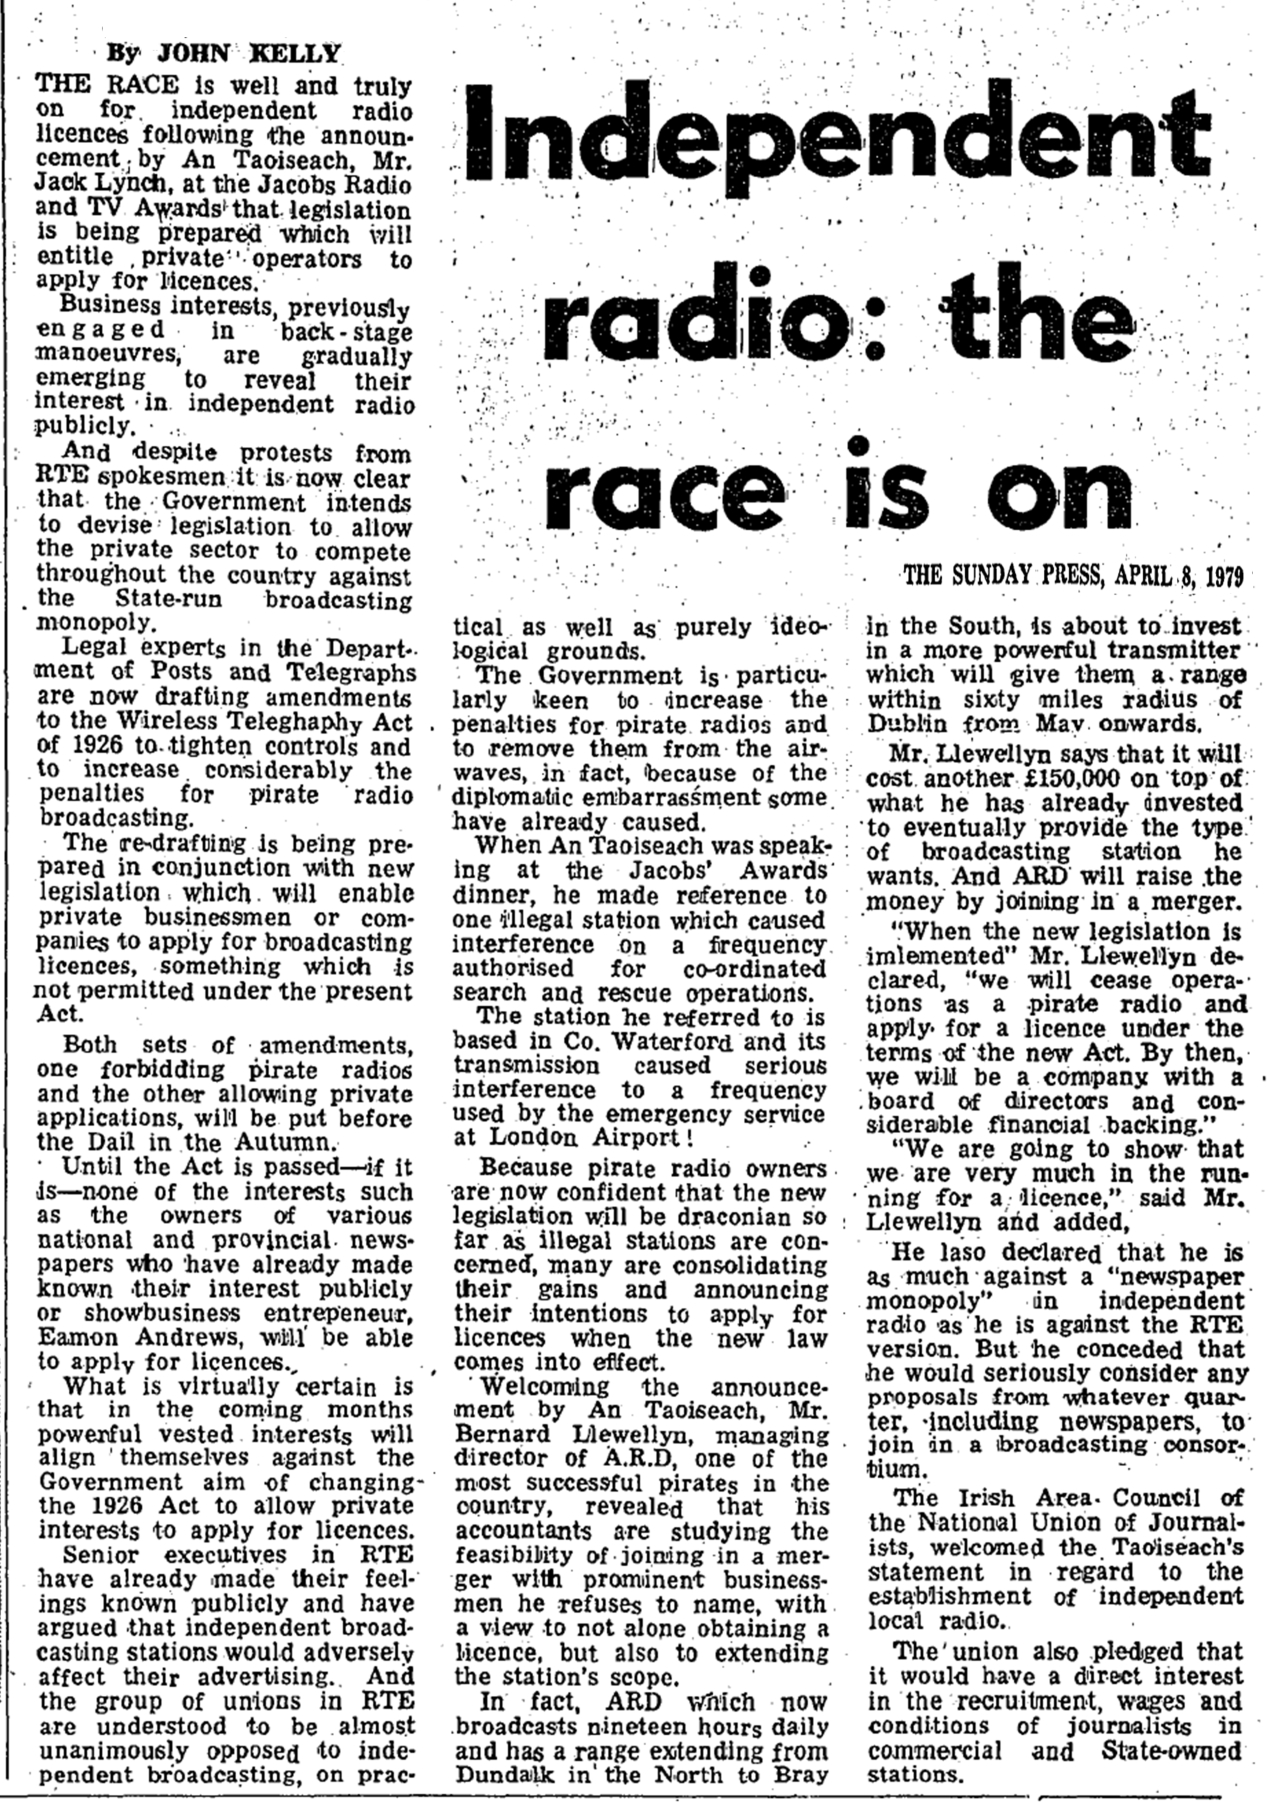 Independent radio - the race is on was a headline in The Sunday Press dated April 8th 1979